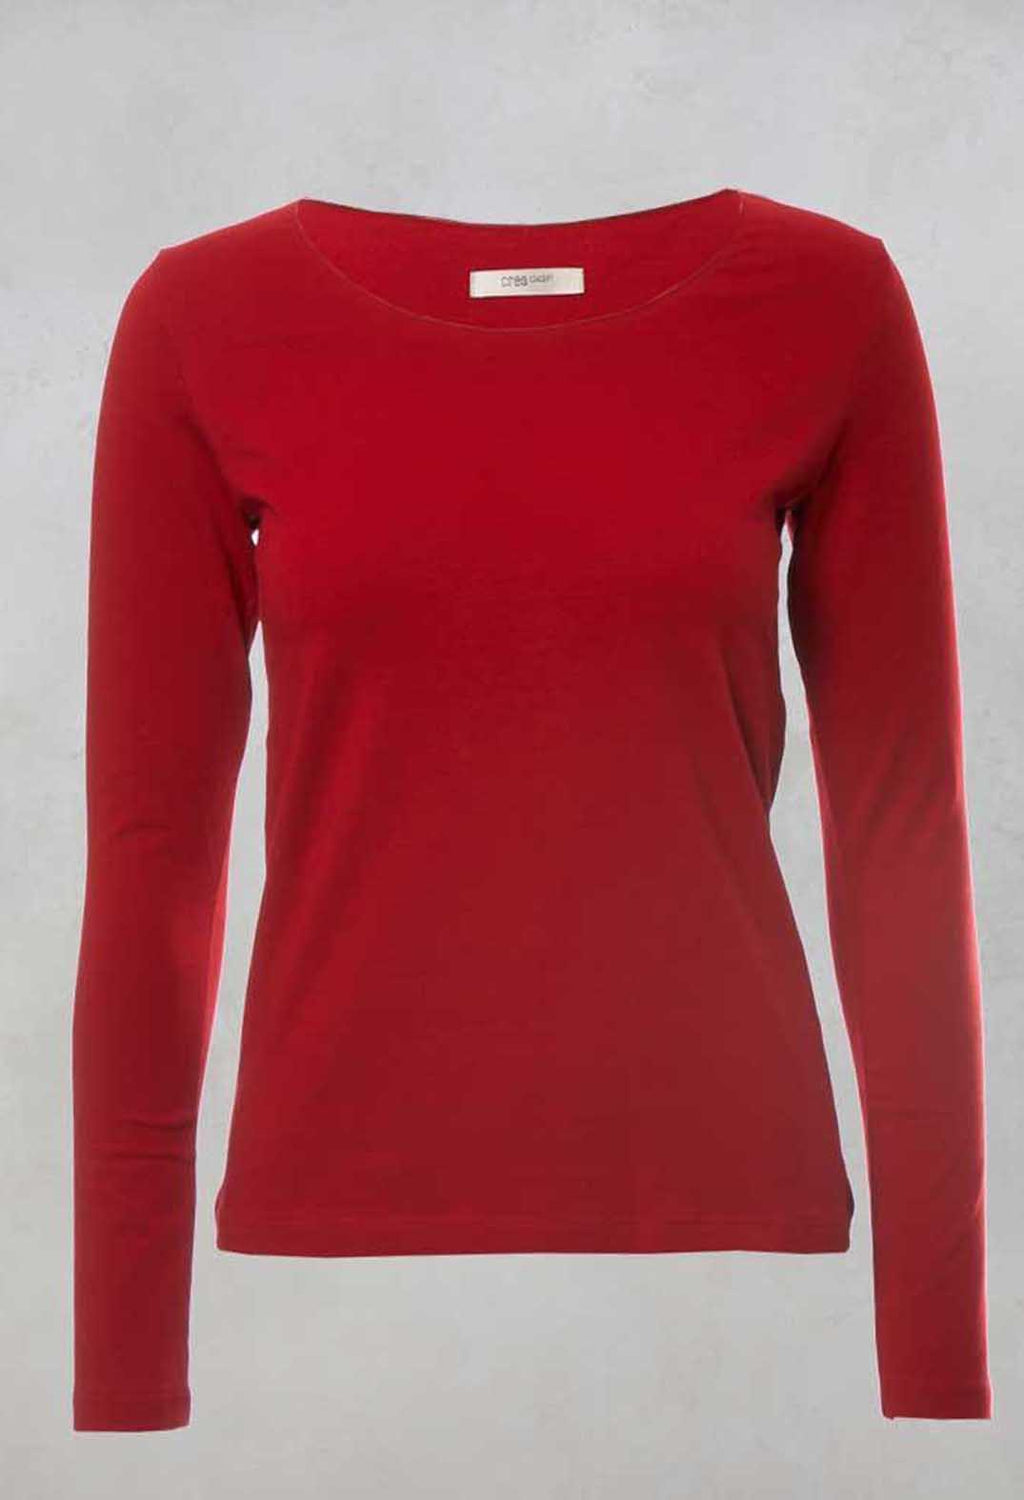 Round Neck Long Sleeved Top in Red